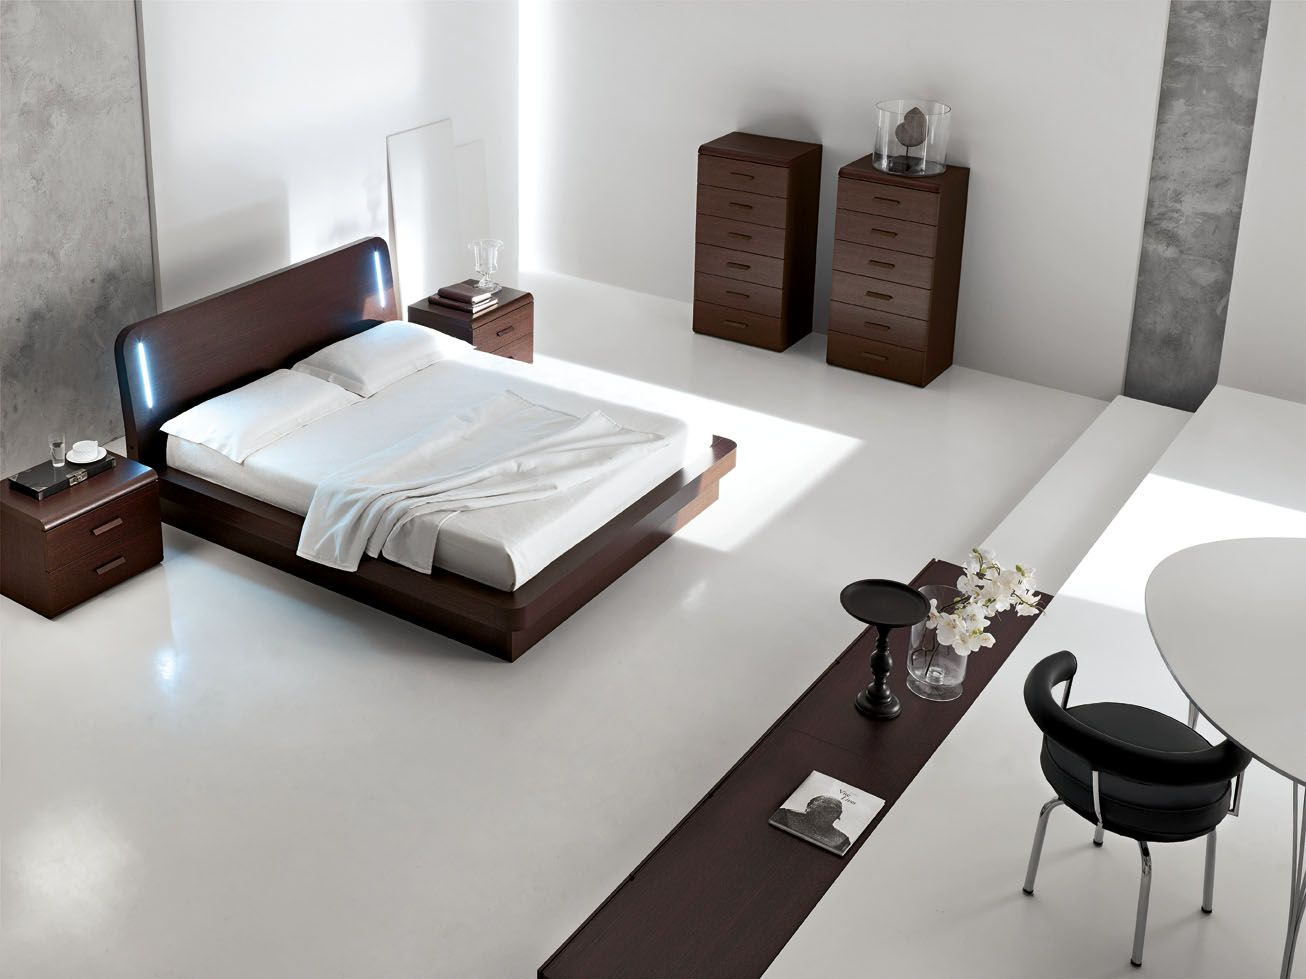 Awesome Letto Usato Milano Pictures - Ameripest.us - ameripest.us